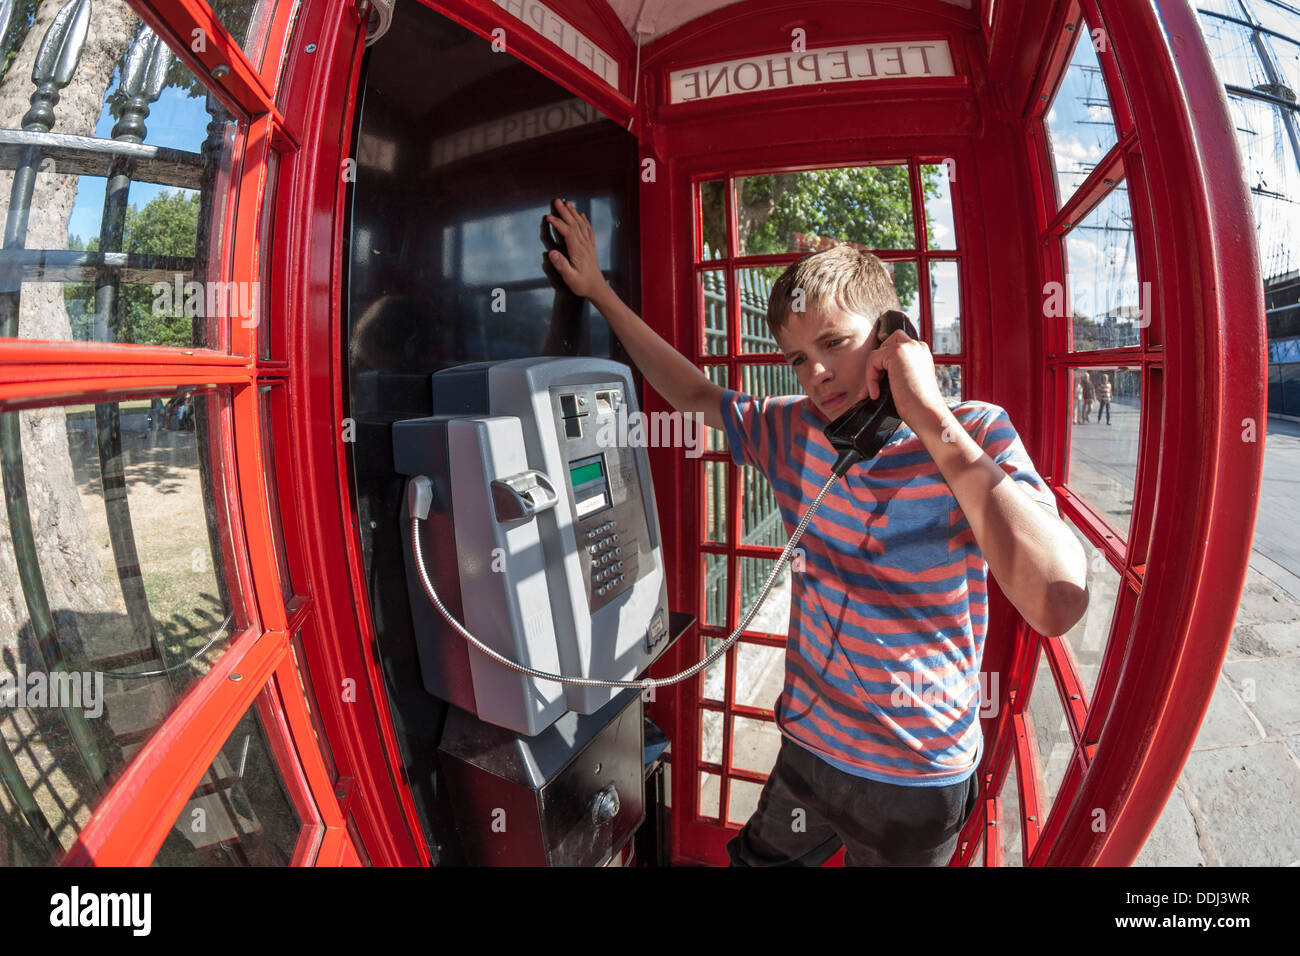 Teenager using phone in red telephone box - Stock Image